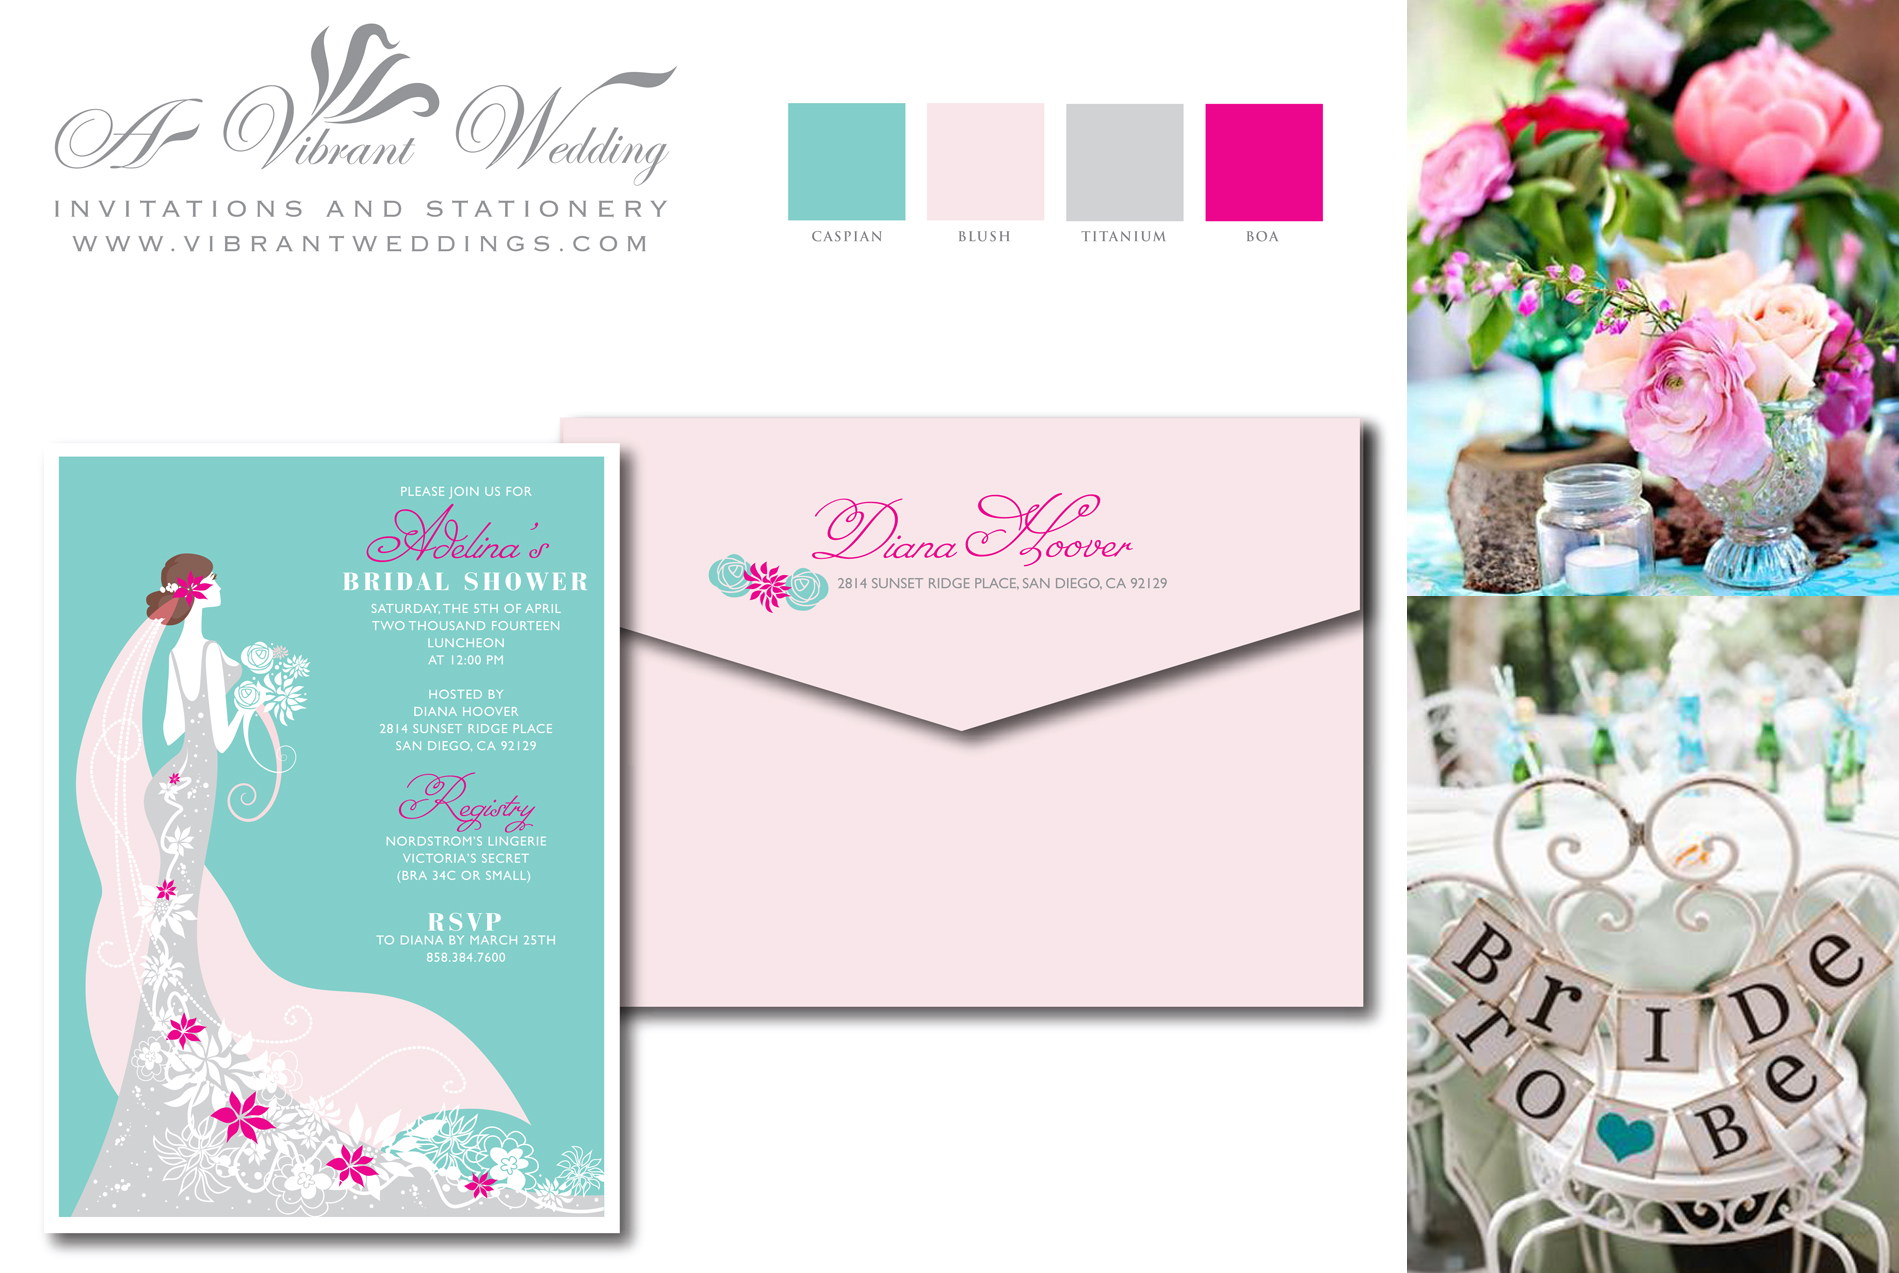 Bridal Shower Invitation – Bride with Floral Cascade March 17, 2014